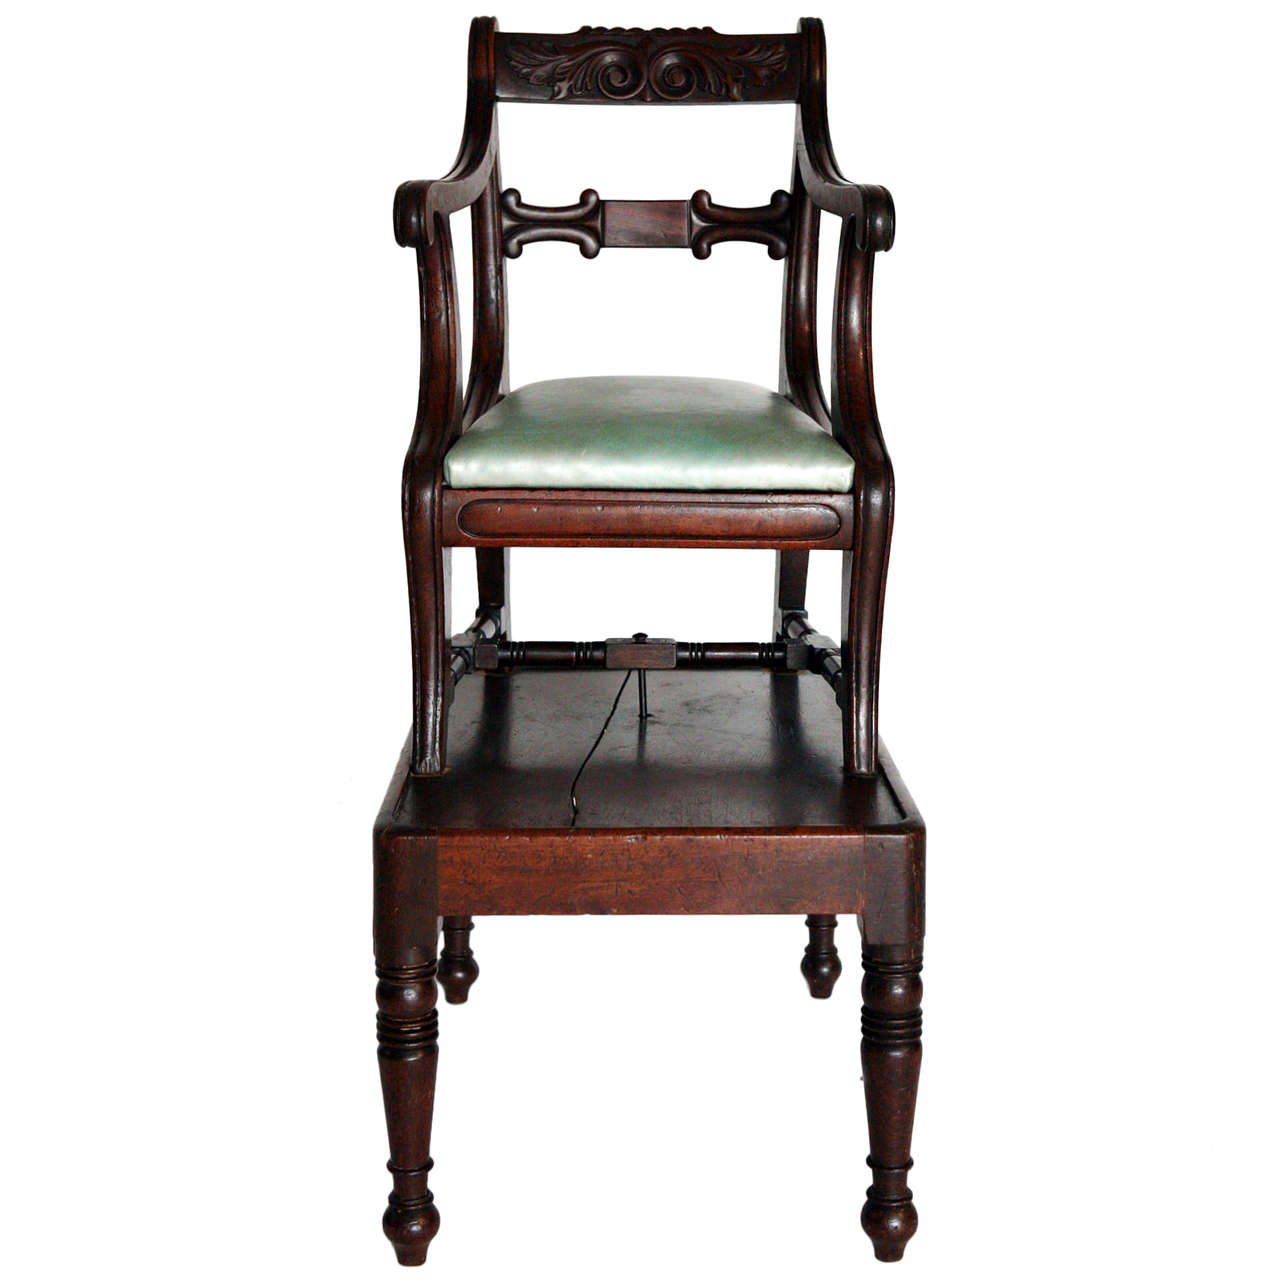 Child's English Regency High Chair - Antique Georgian Mahogany Childs High Chair For Sale At 1stdibs